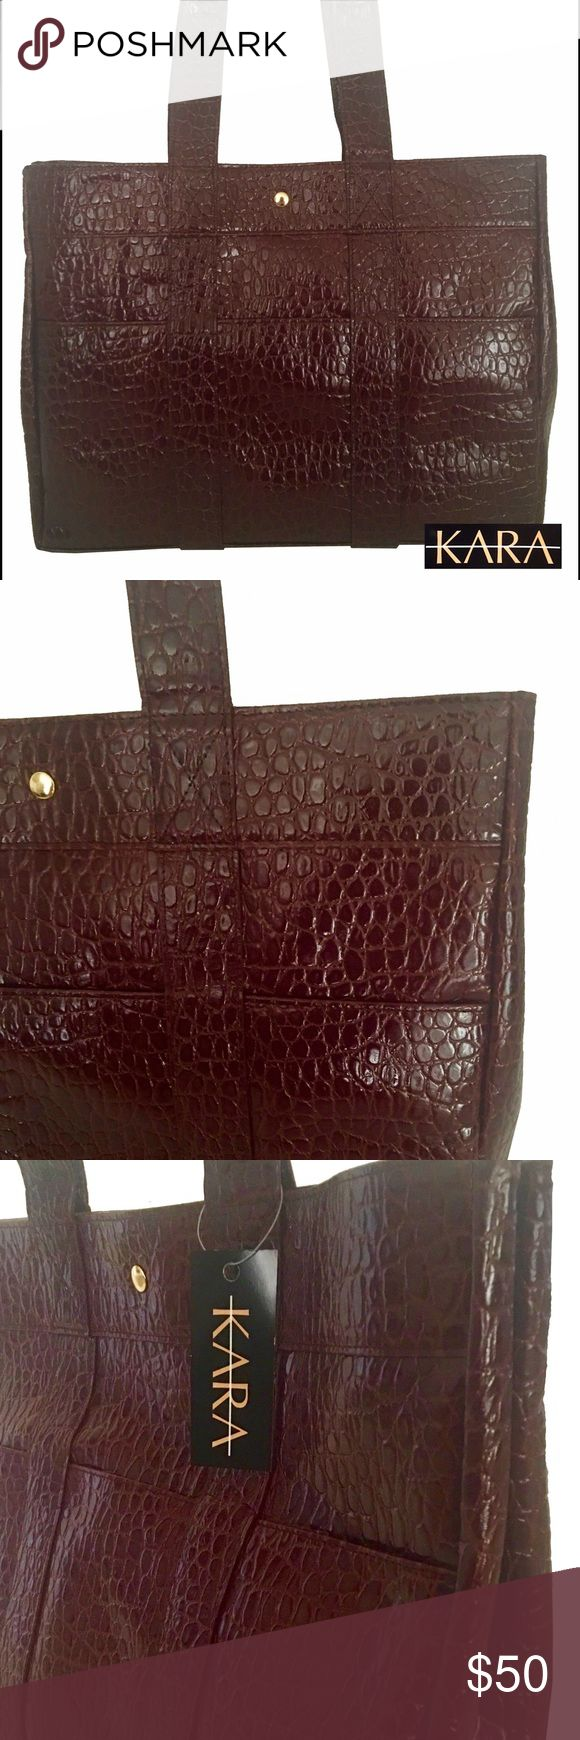 "LARGE PLUM CROCO LEATHER TOTE - KARA HANDBAG LARGE PLUM CROCO LEATHER TOTE  Brand: KARA Imports Handbag  Bag Overall Length: 19"" Bag Height: 13"" Bag Depth: 4"" Strap Drop: 6""  BRAND NEW, NEVER USED  Genuine leather, high quality handbag.  You absolutely get what you pay for!  NORMALLY RETAILS AT $235.00  It has double handles/straps. It has interior leather lining and one zipped pocket. KARA Imports Bags Totes"